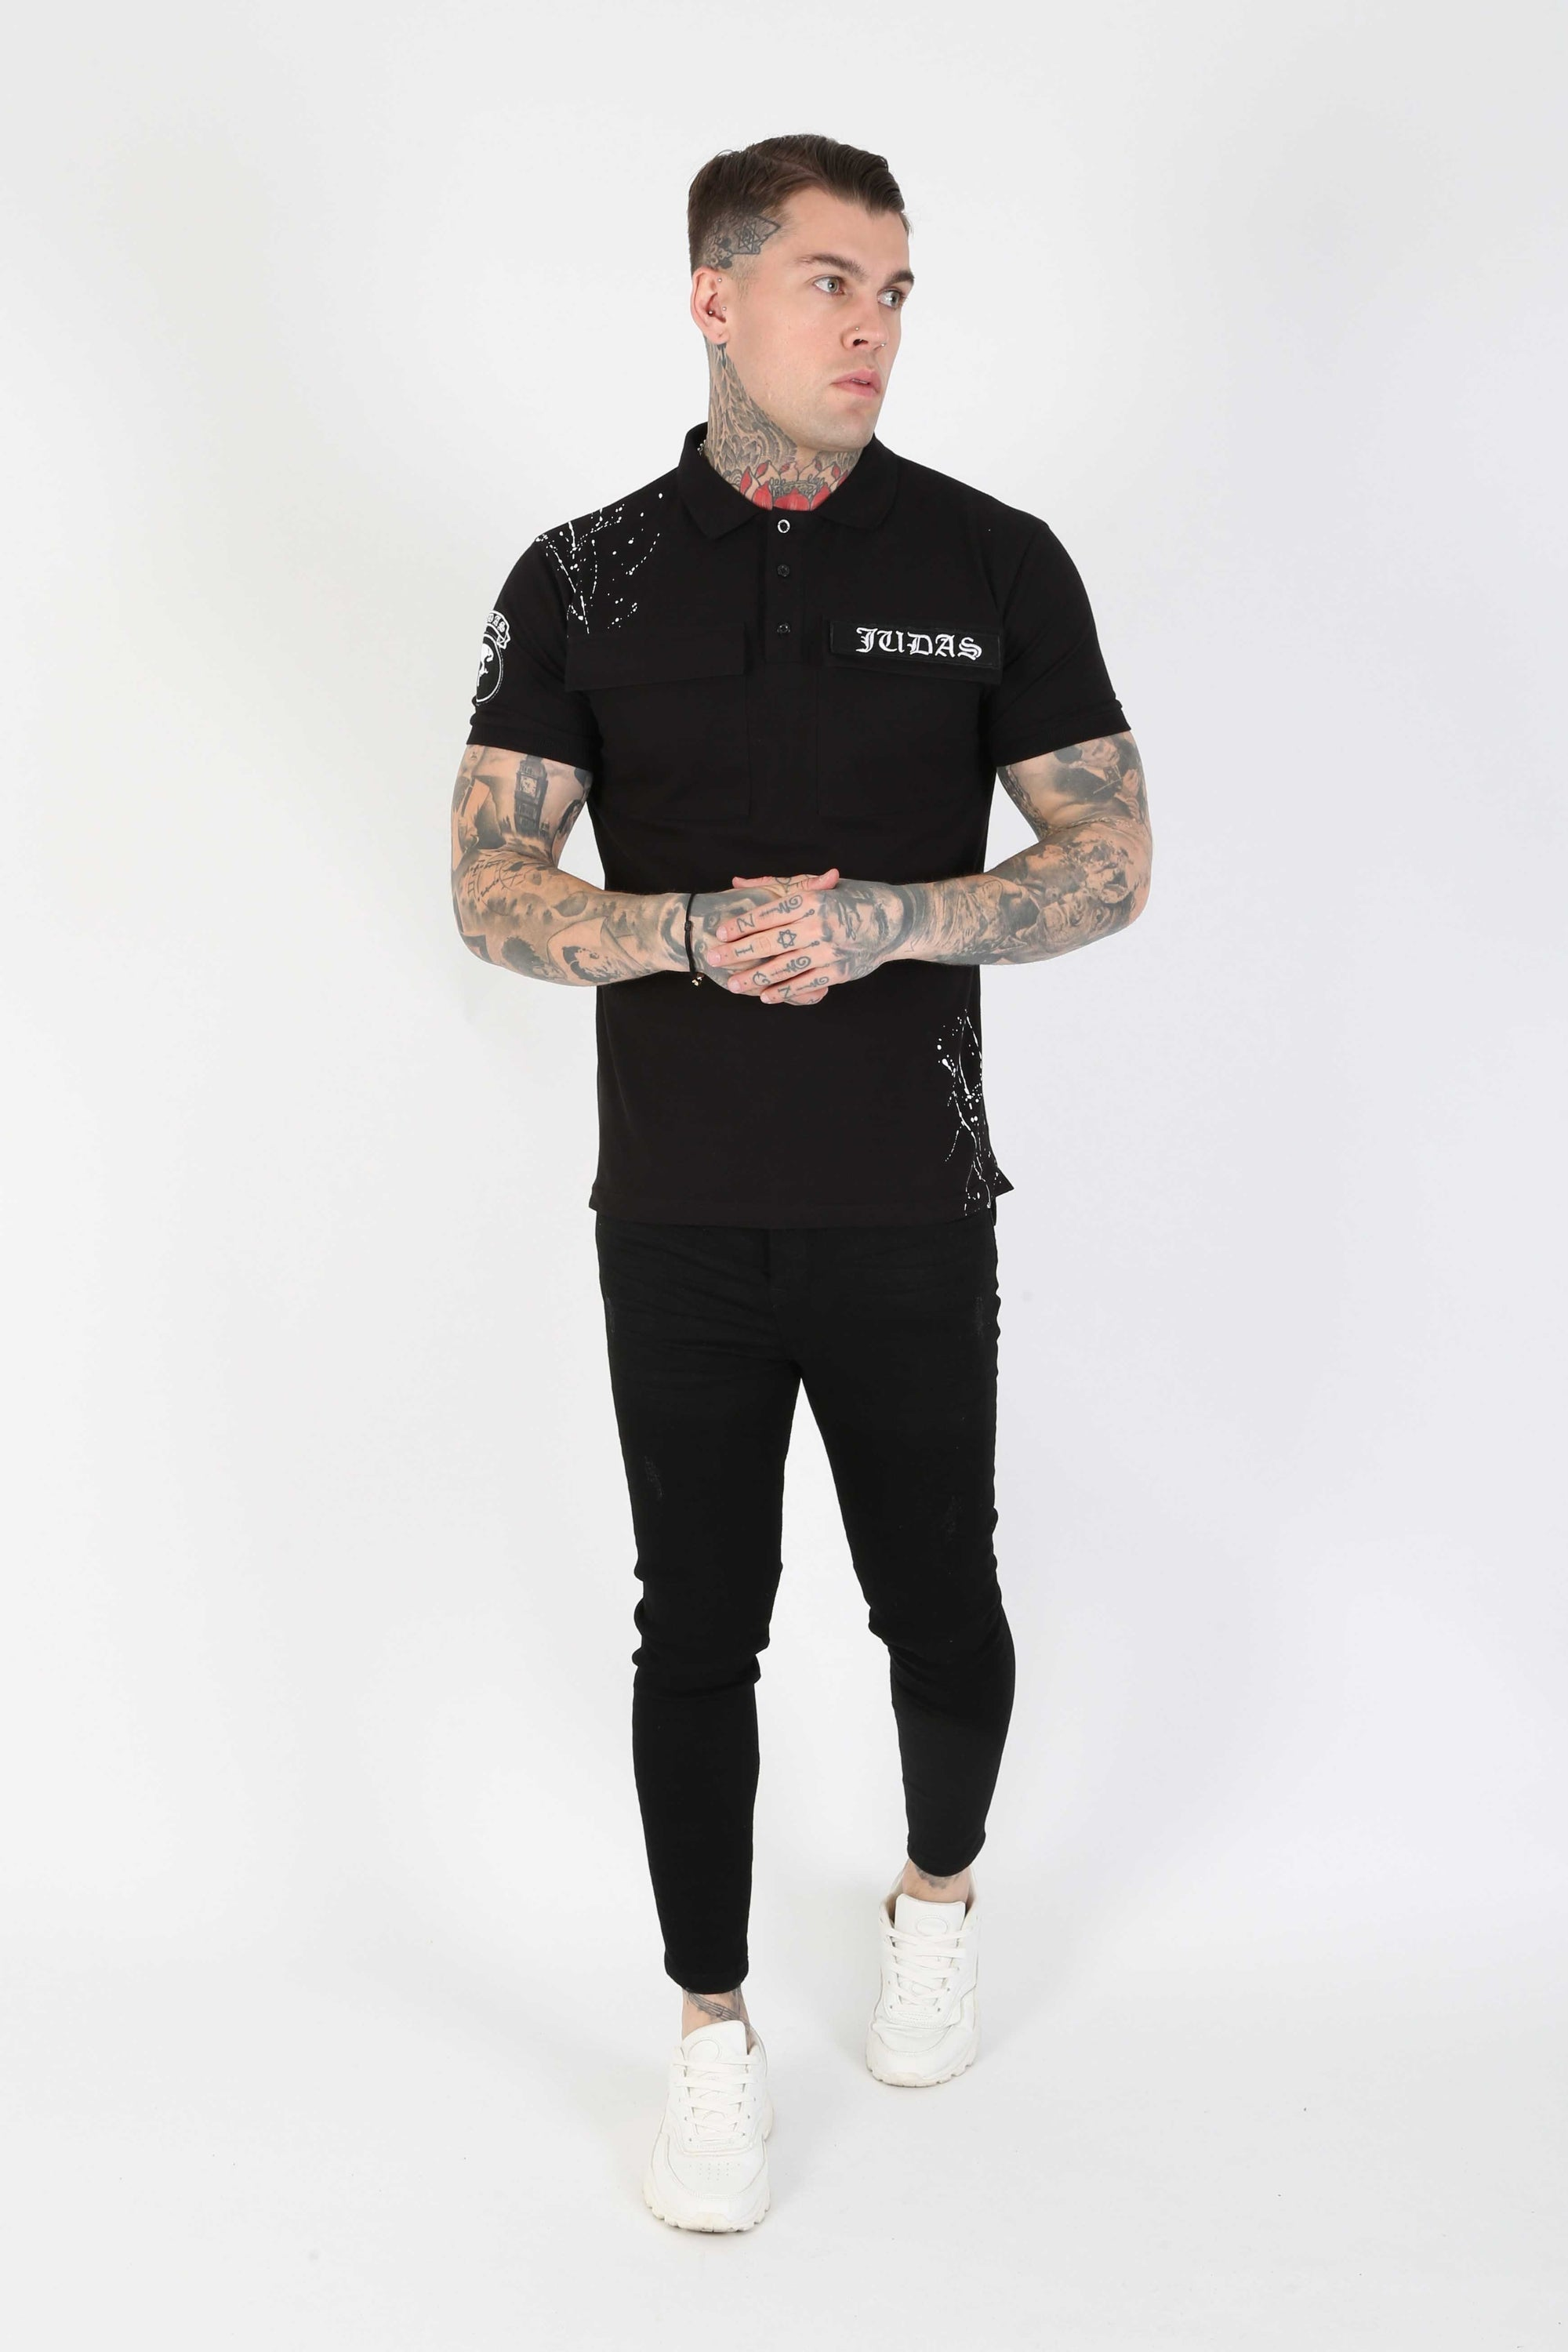 Barra Military Men's Polo - Black - Judas Sinned Clothing